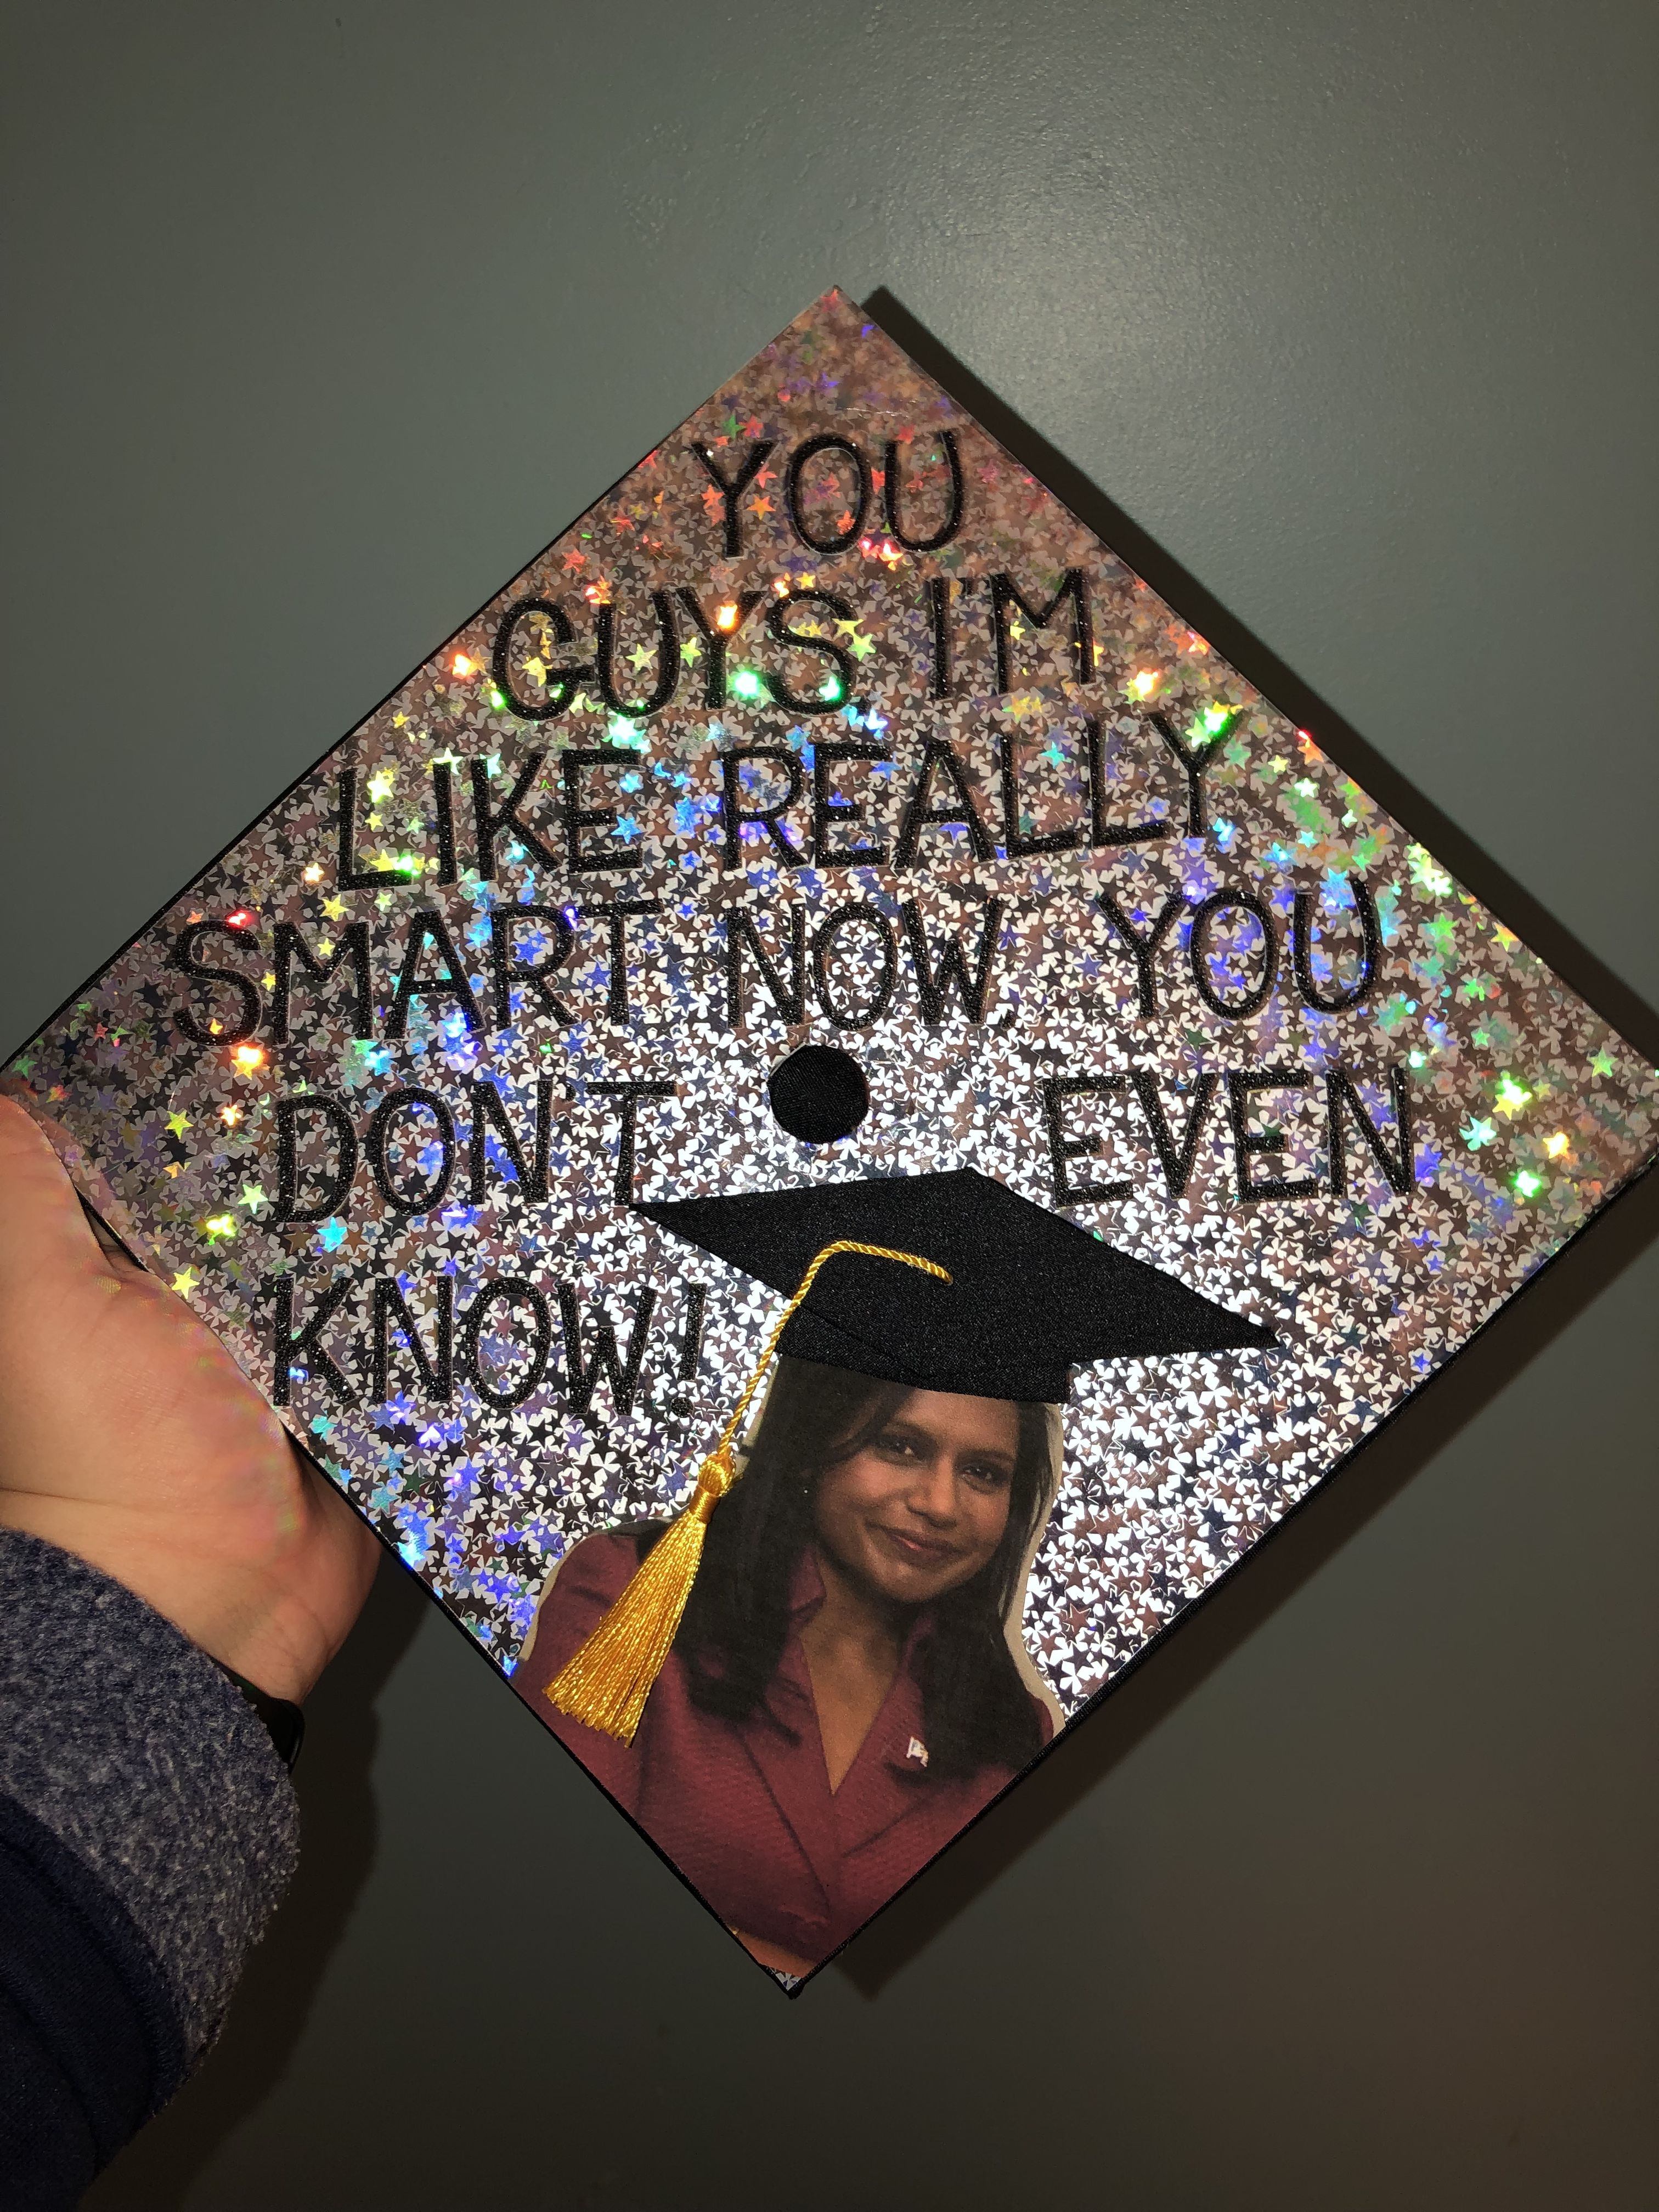 Kelly from The Office graduation cap decoration  High school